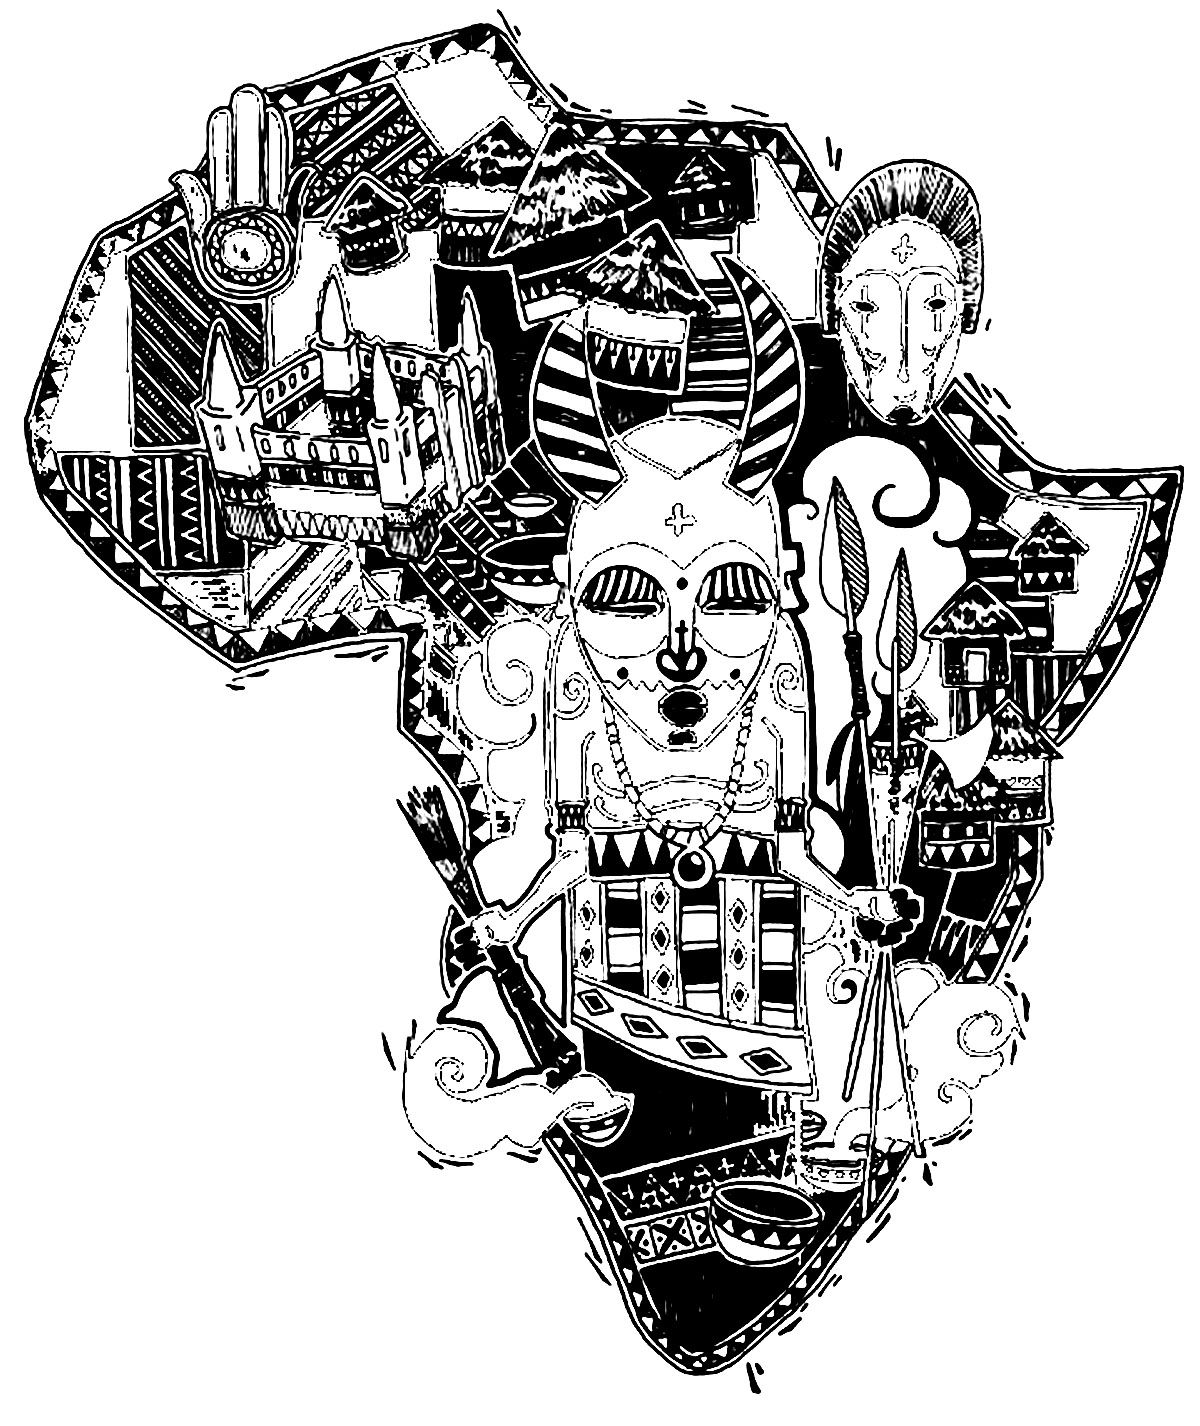 Coloring pictures continents - Free Coloring Page Coloring Adult Africa Difficult Map The African Continent